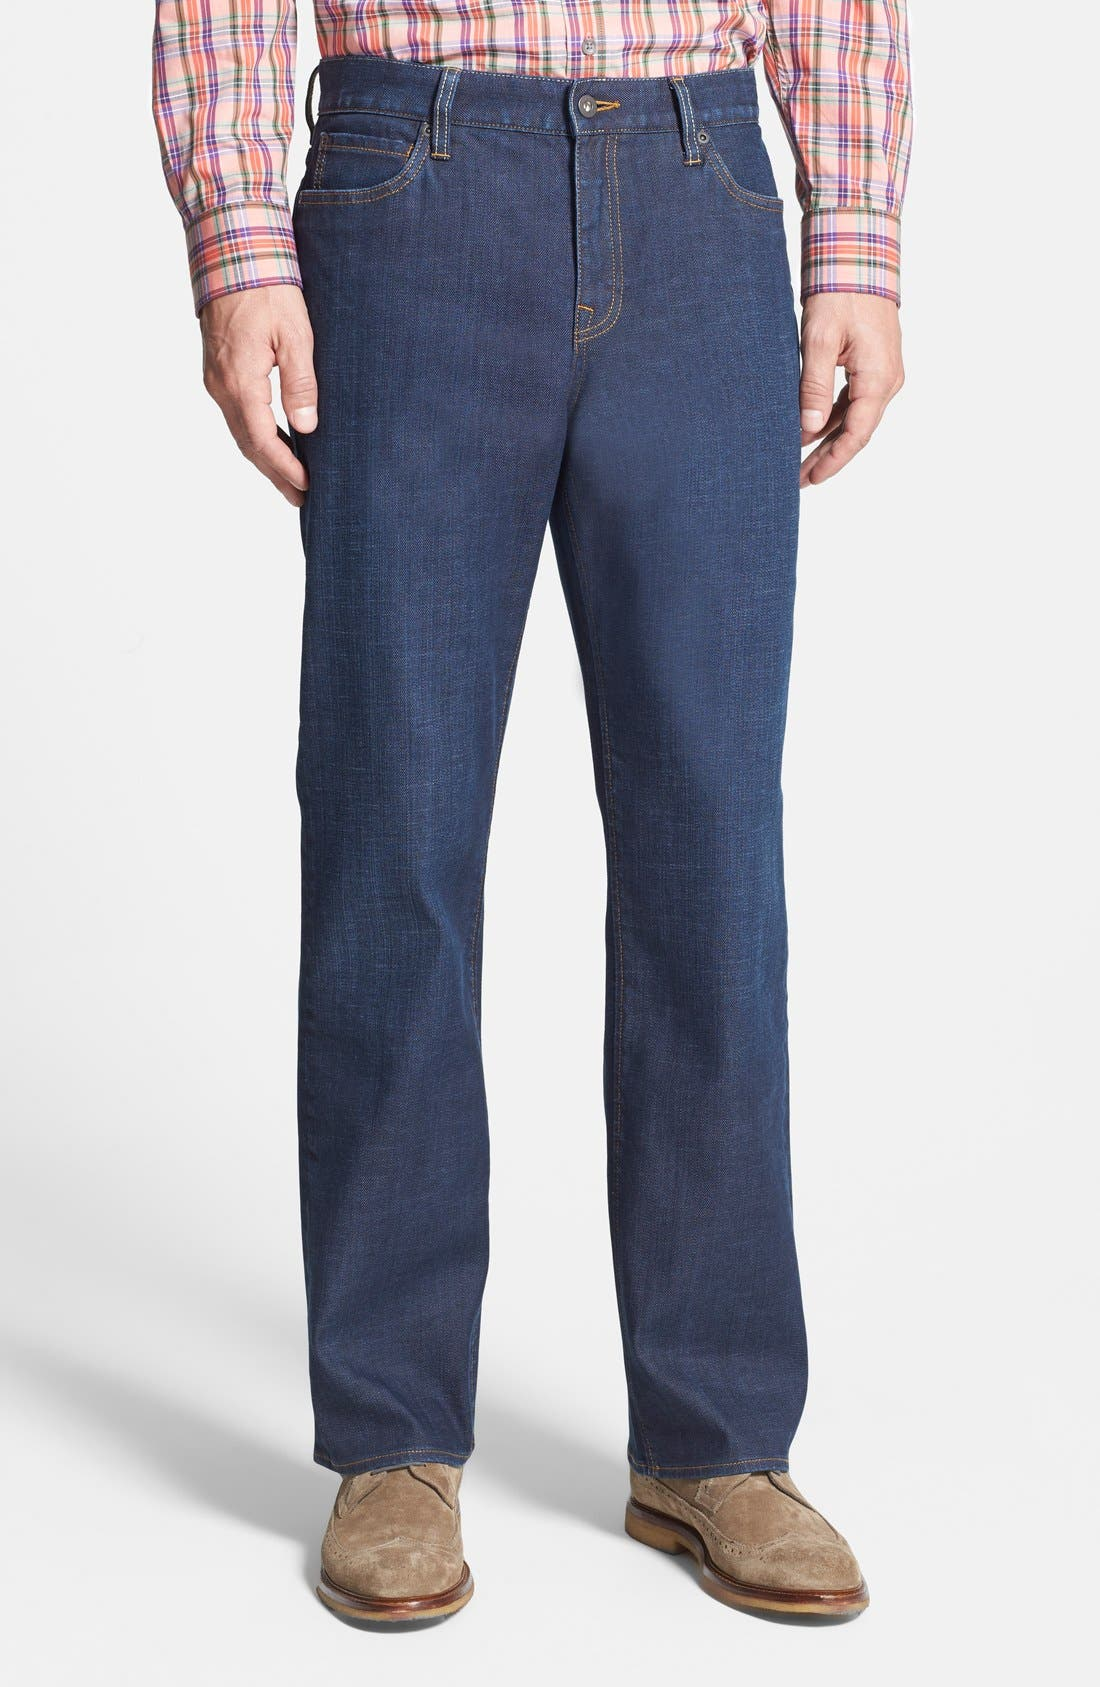 CUTTER & BUCK 'Greenwood' Relaxed Fit Jeans